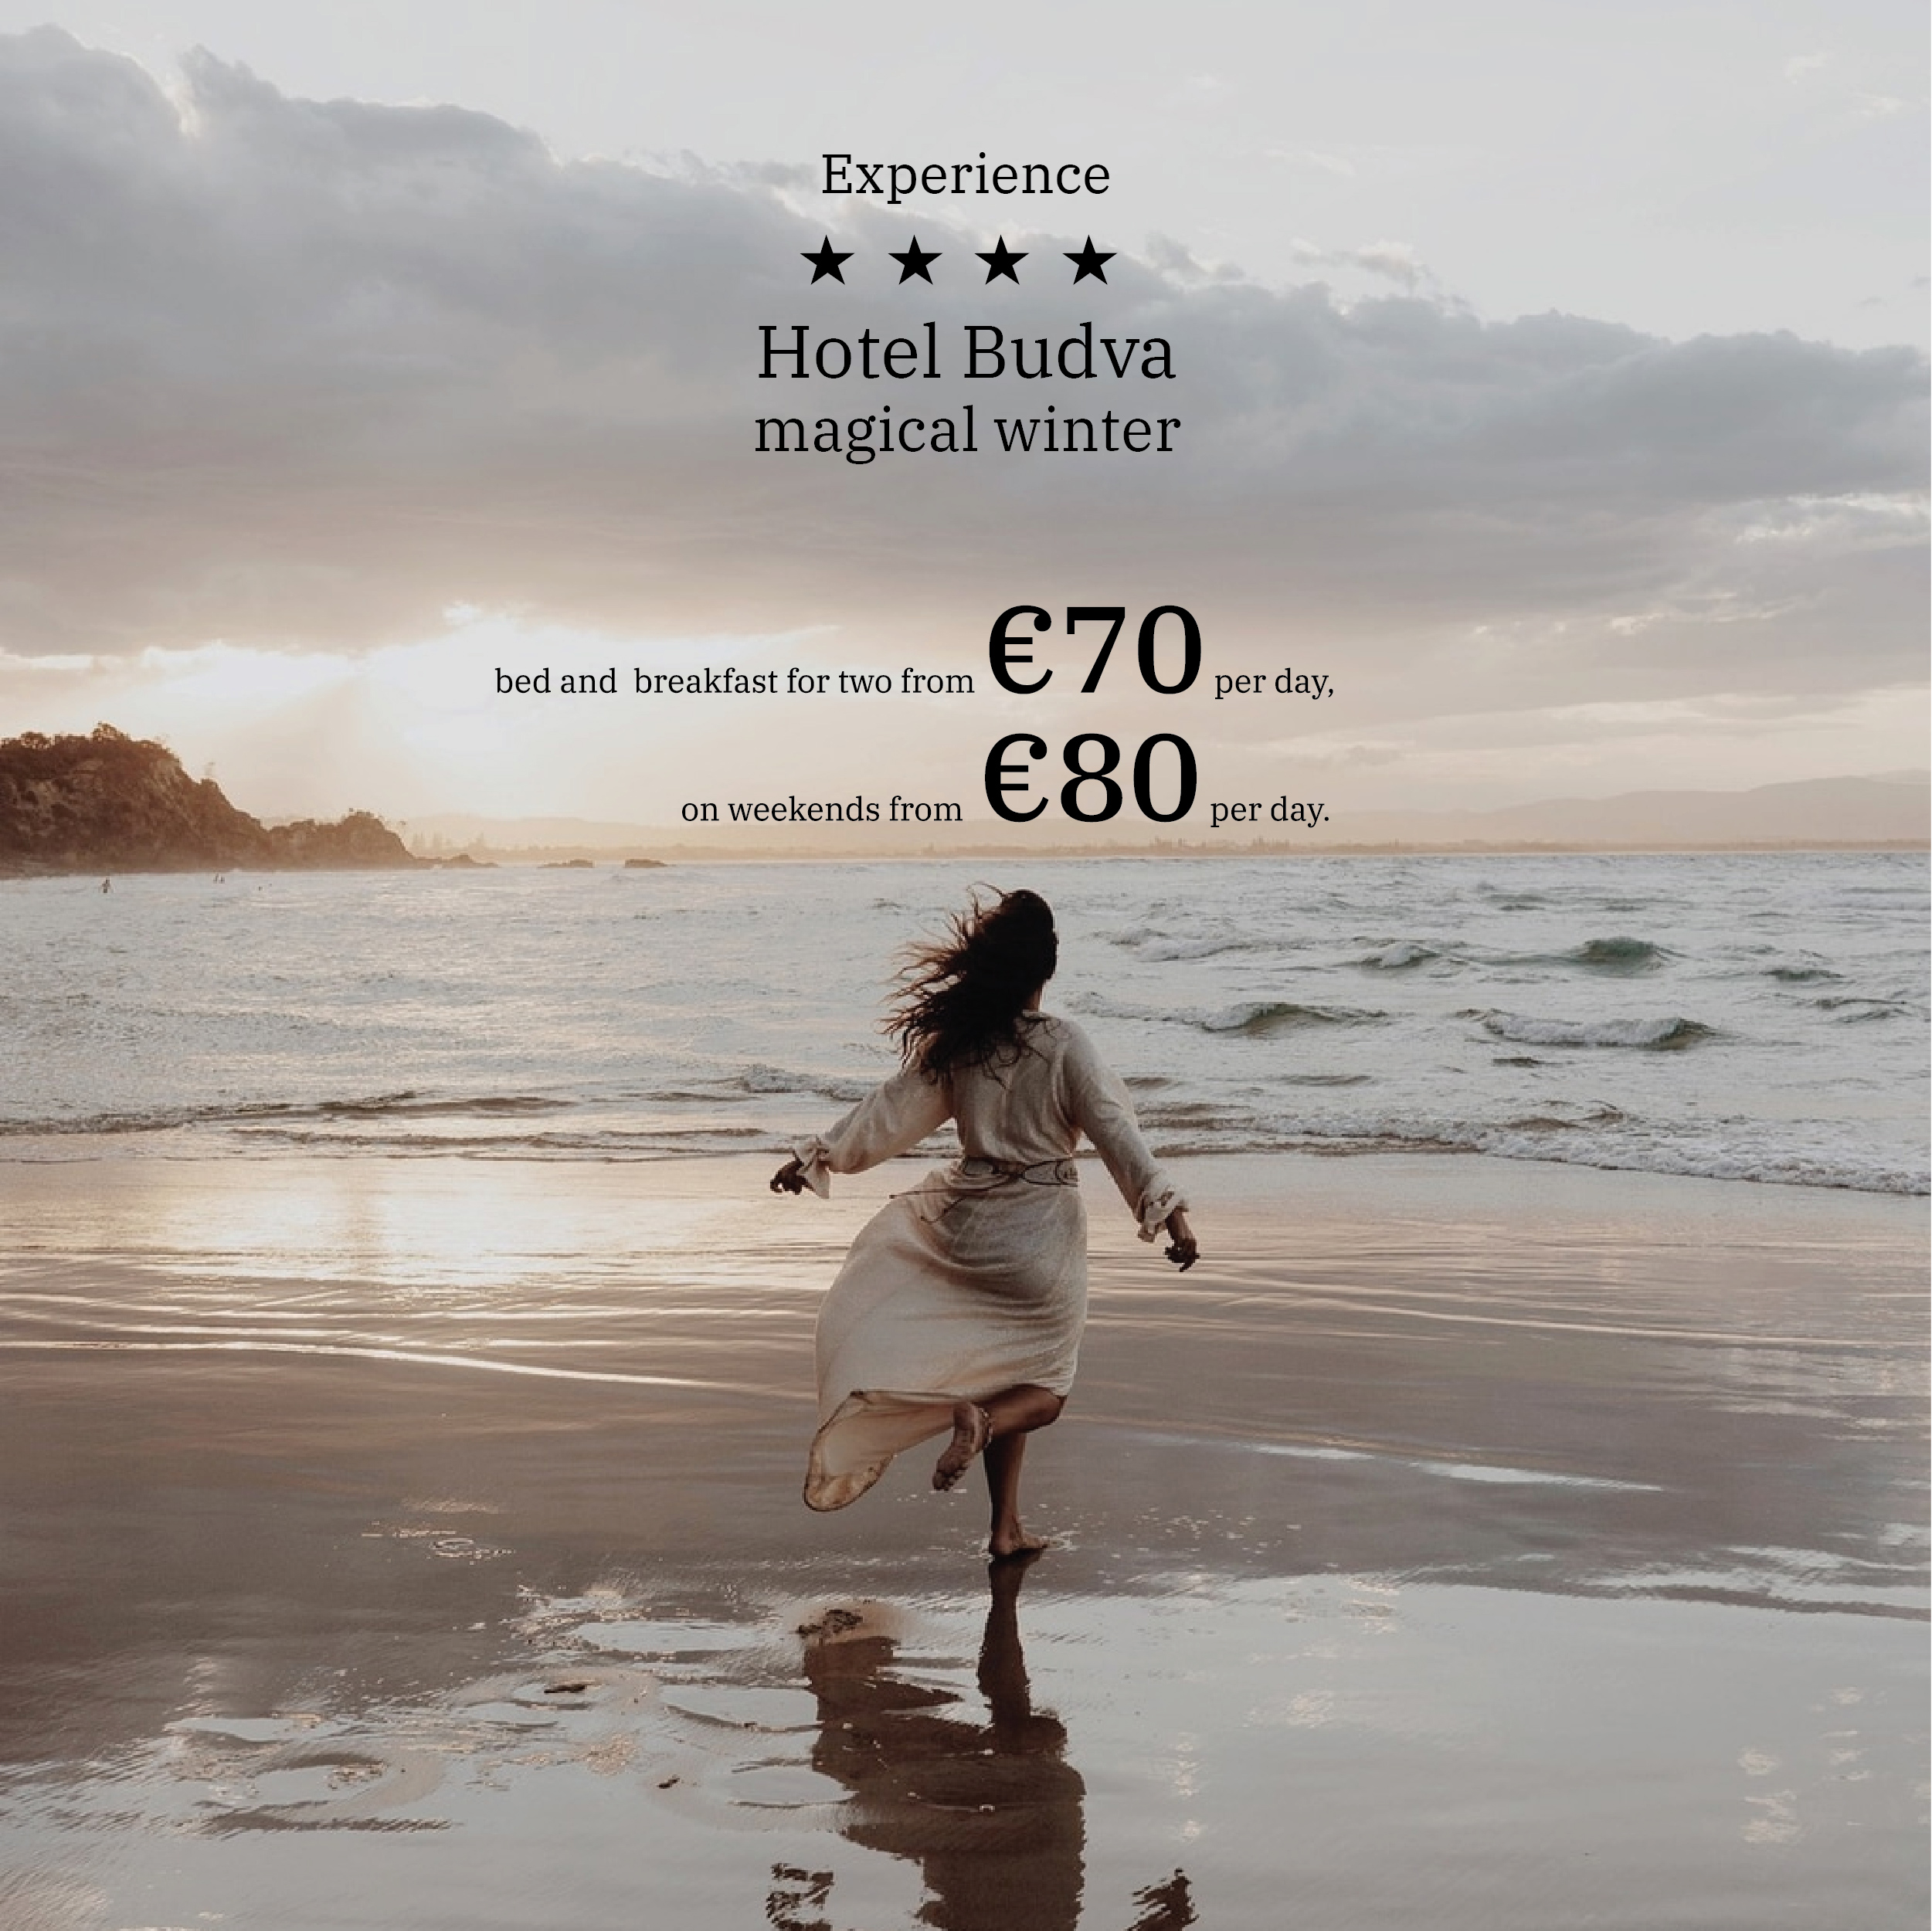 Experience magical winter at sea in Hotel Budva 4*